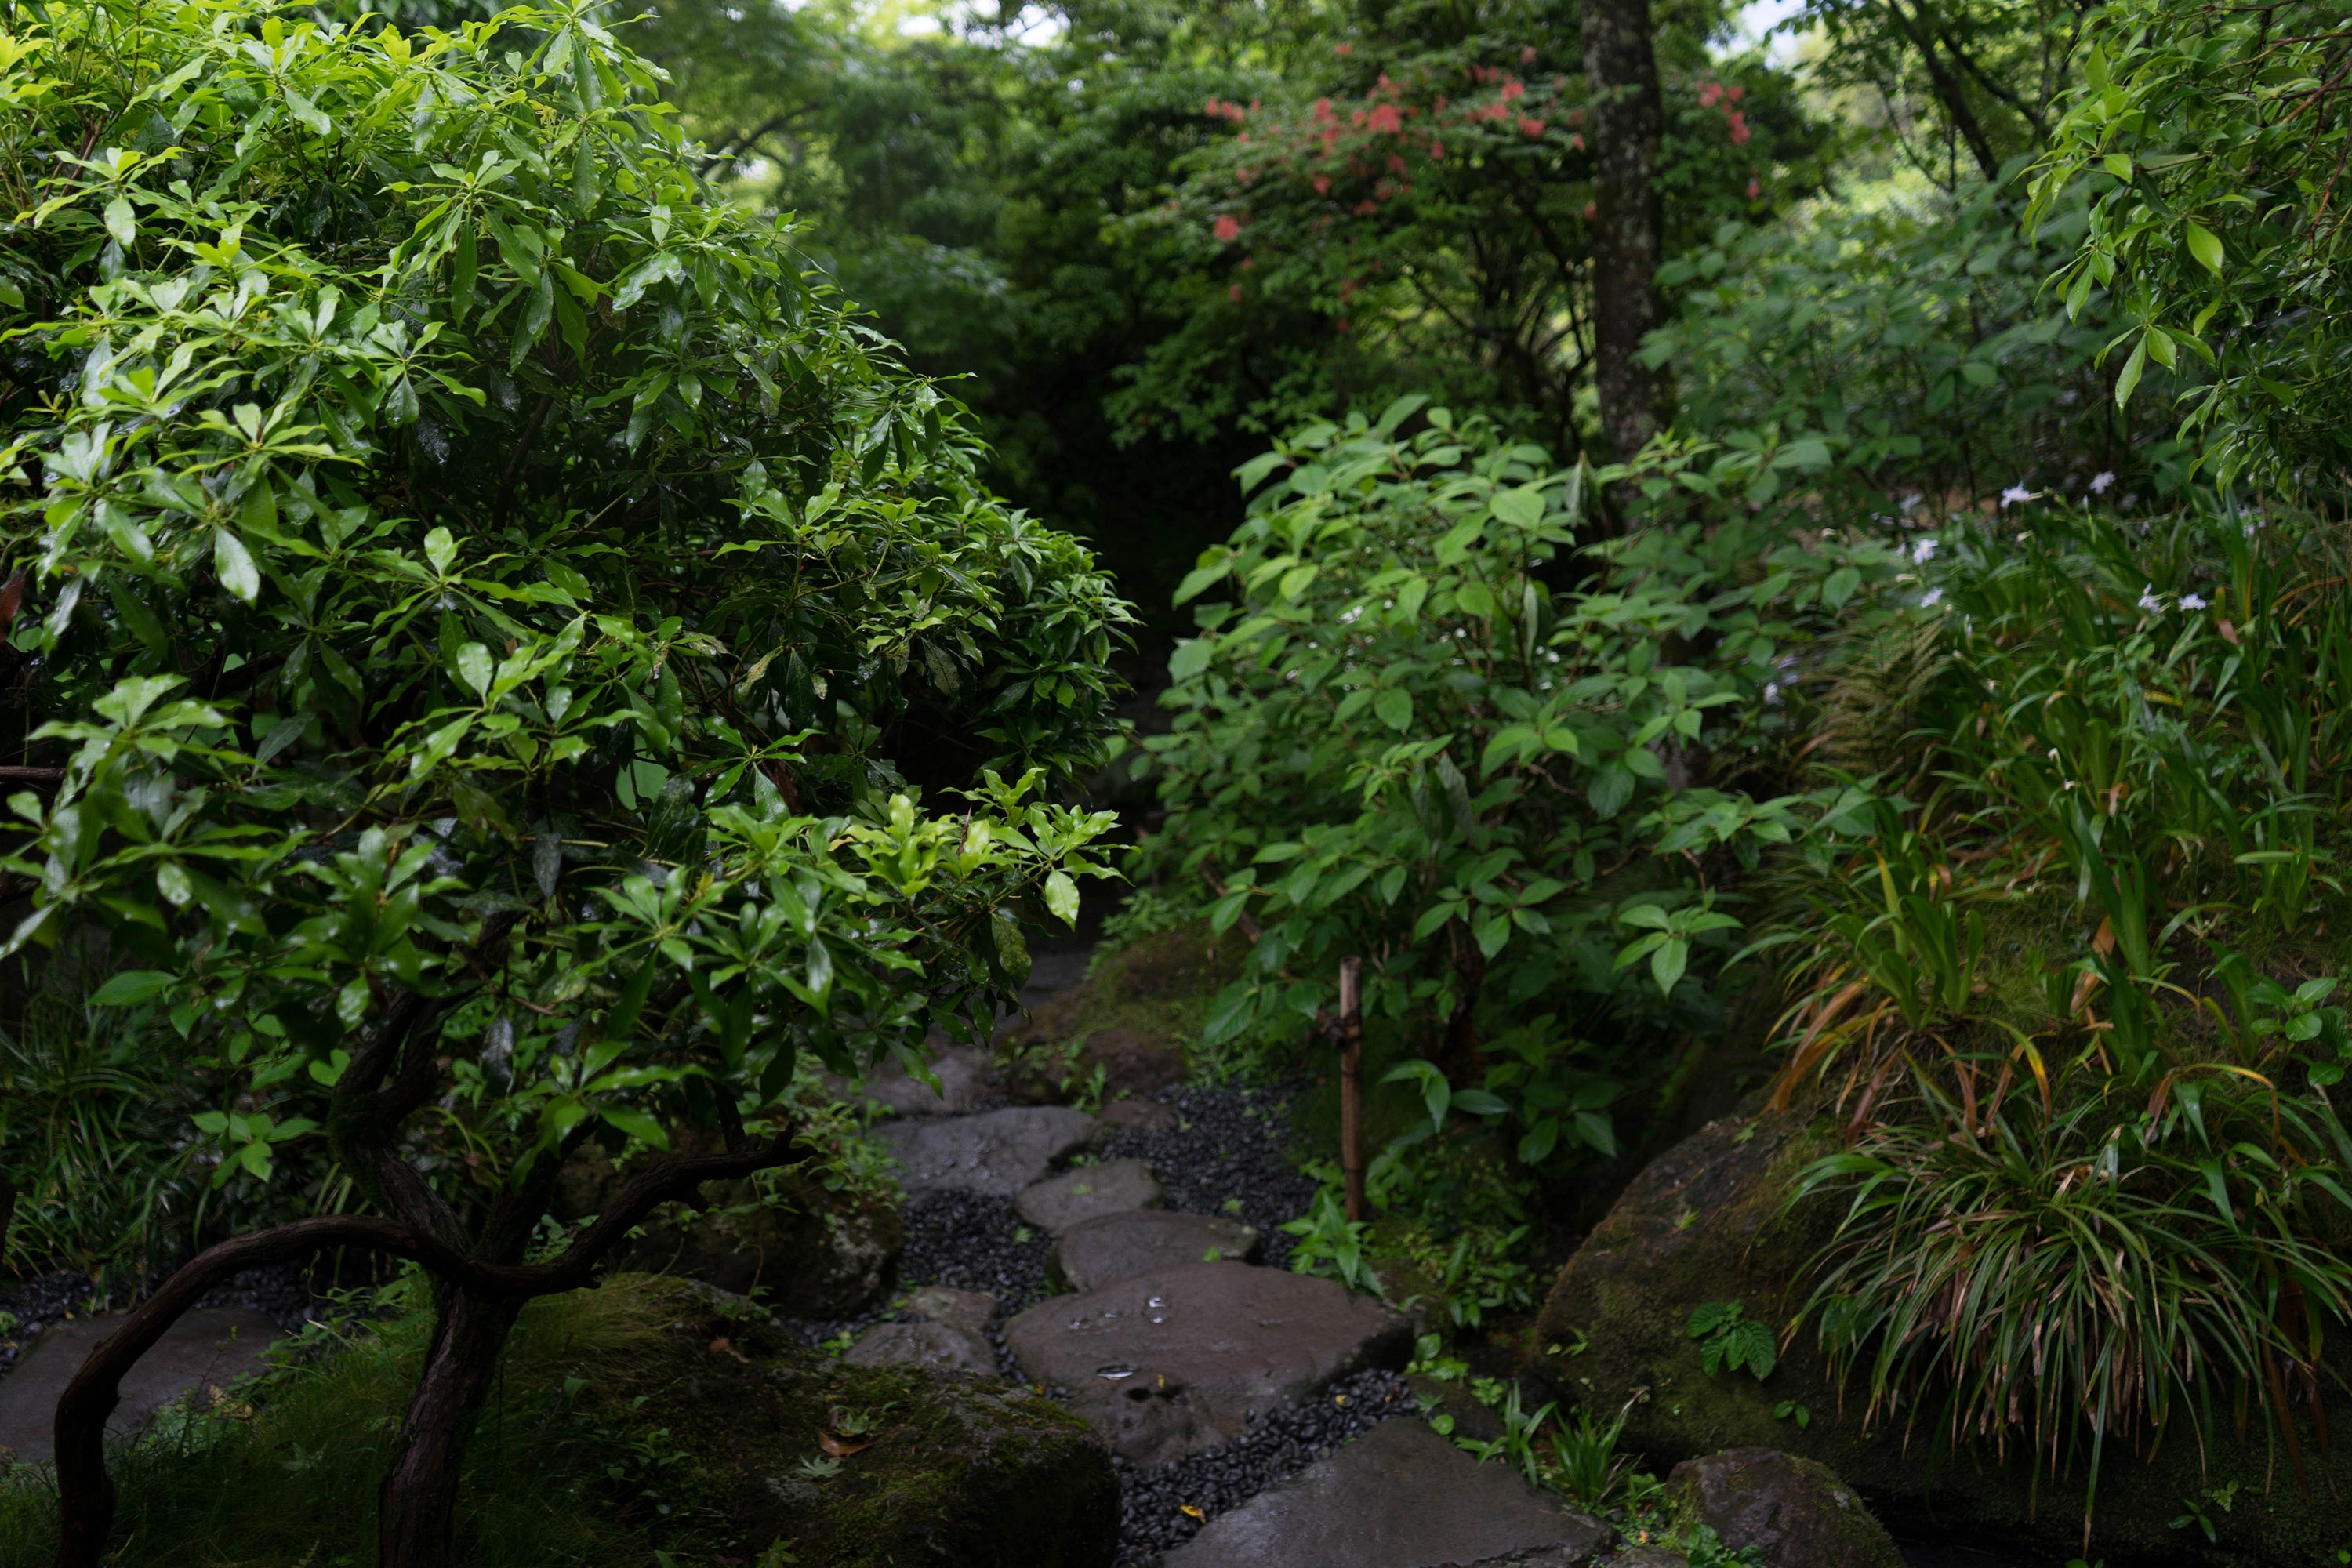 Back in Japan – Hakone